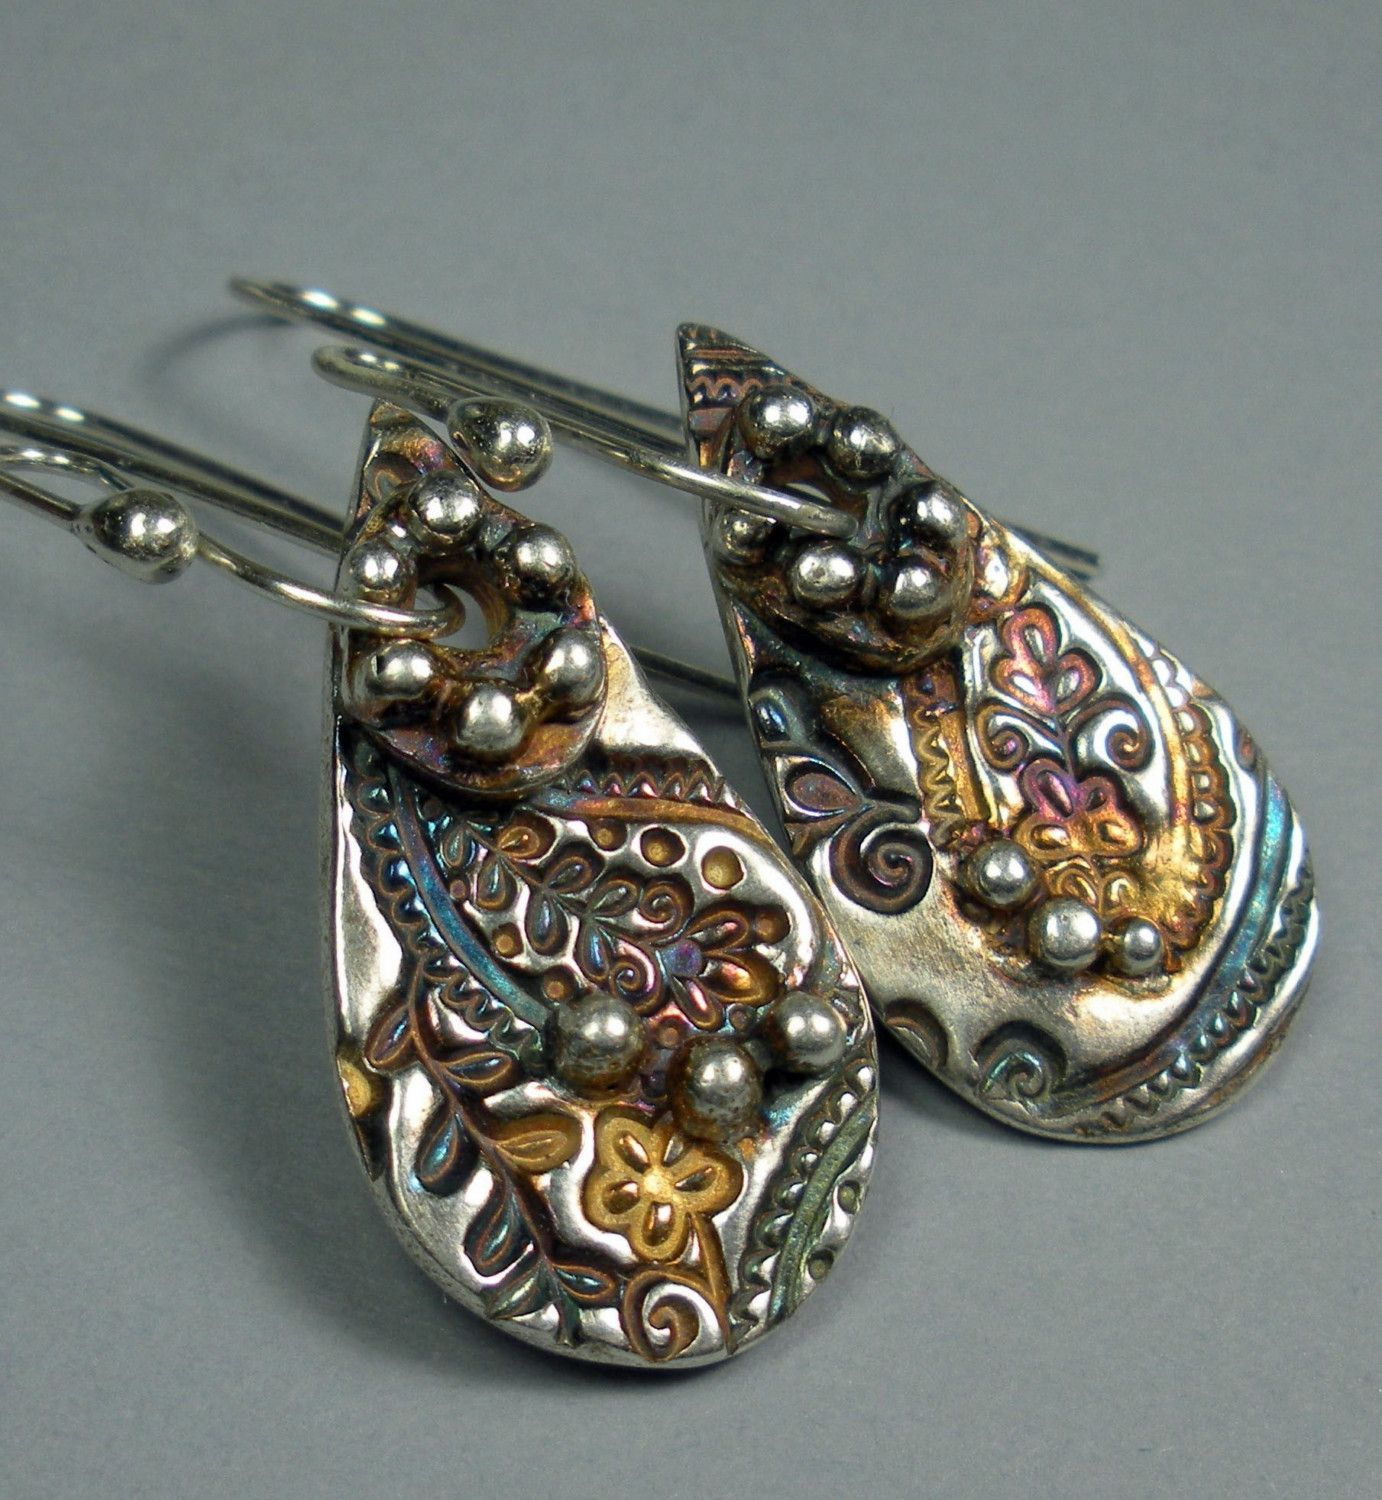 Earrings   FebraRose Designs.  'Paisley'.  Sterling silver with patina. PMC